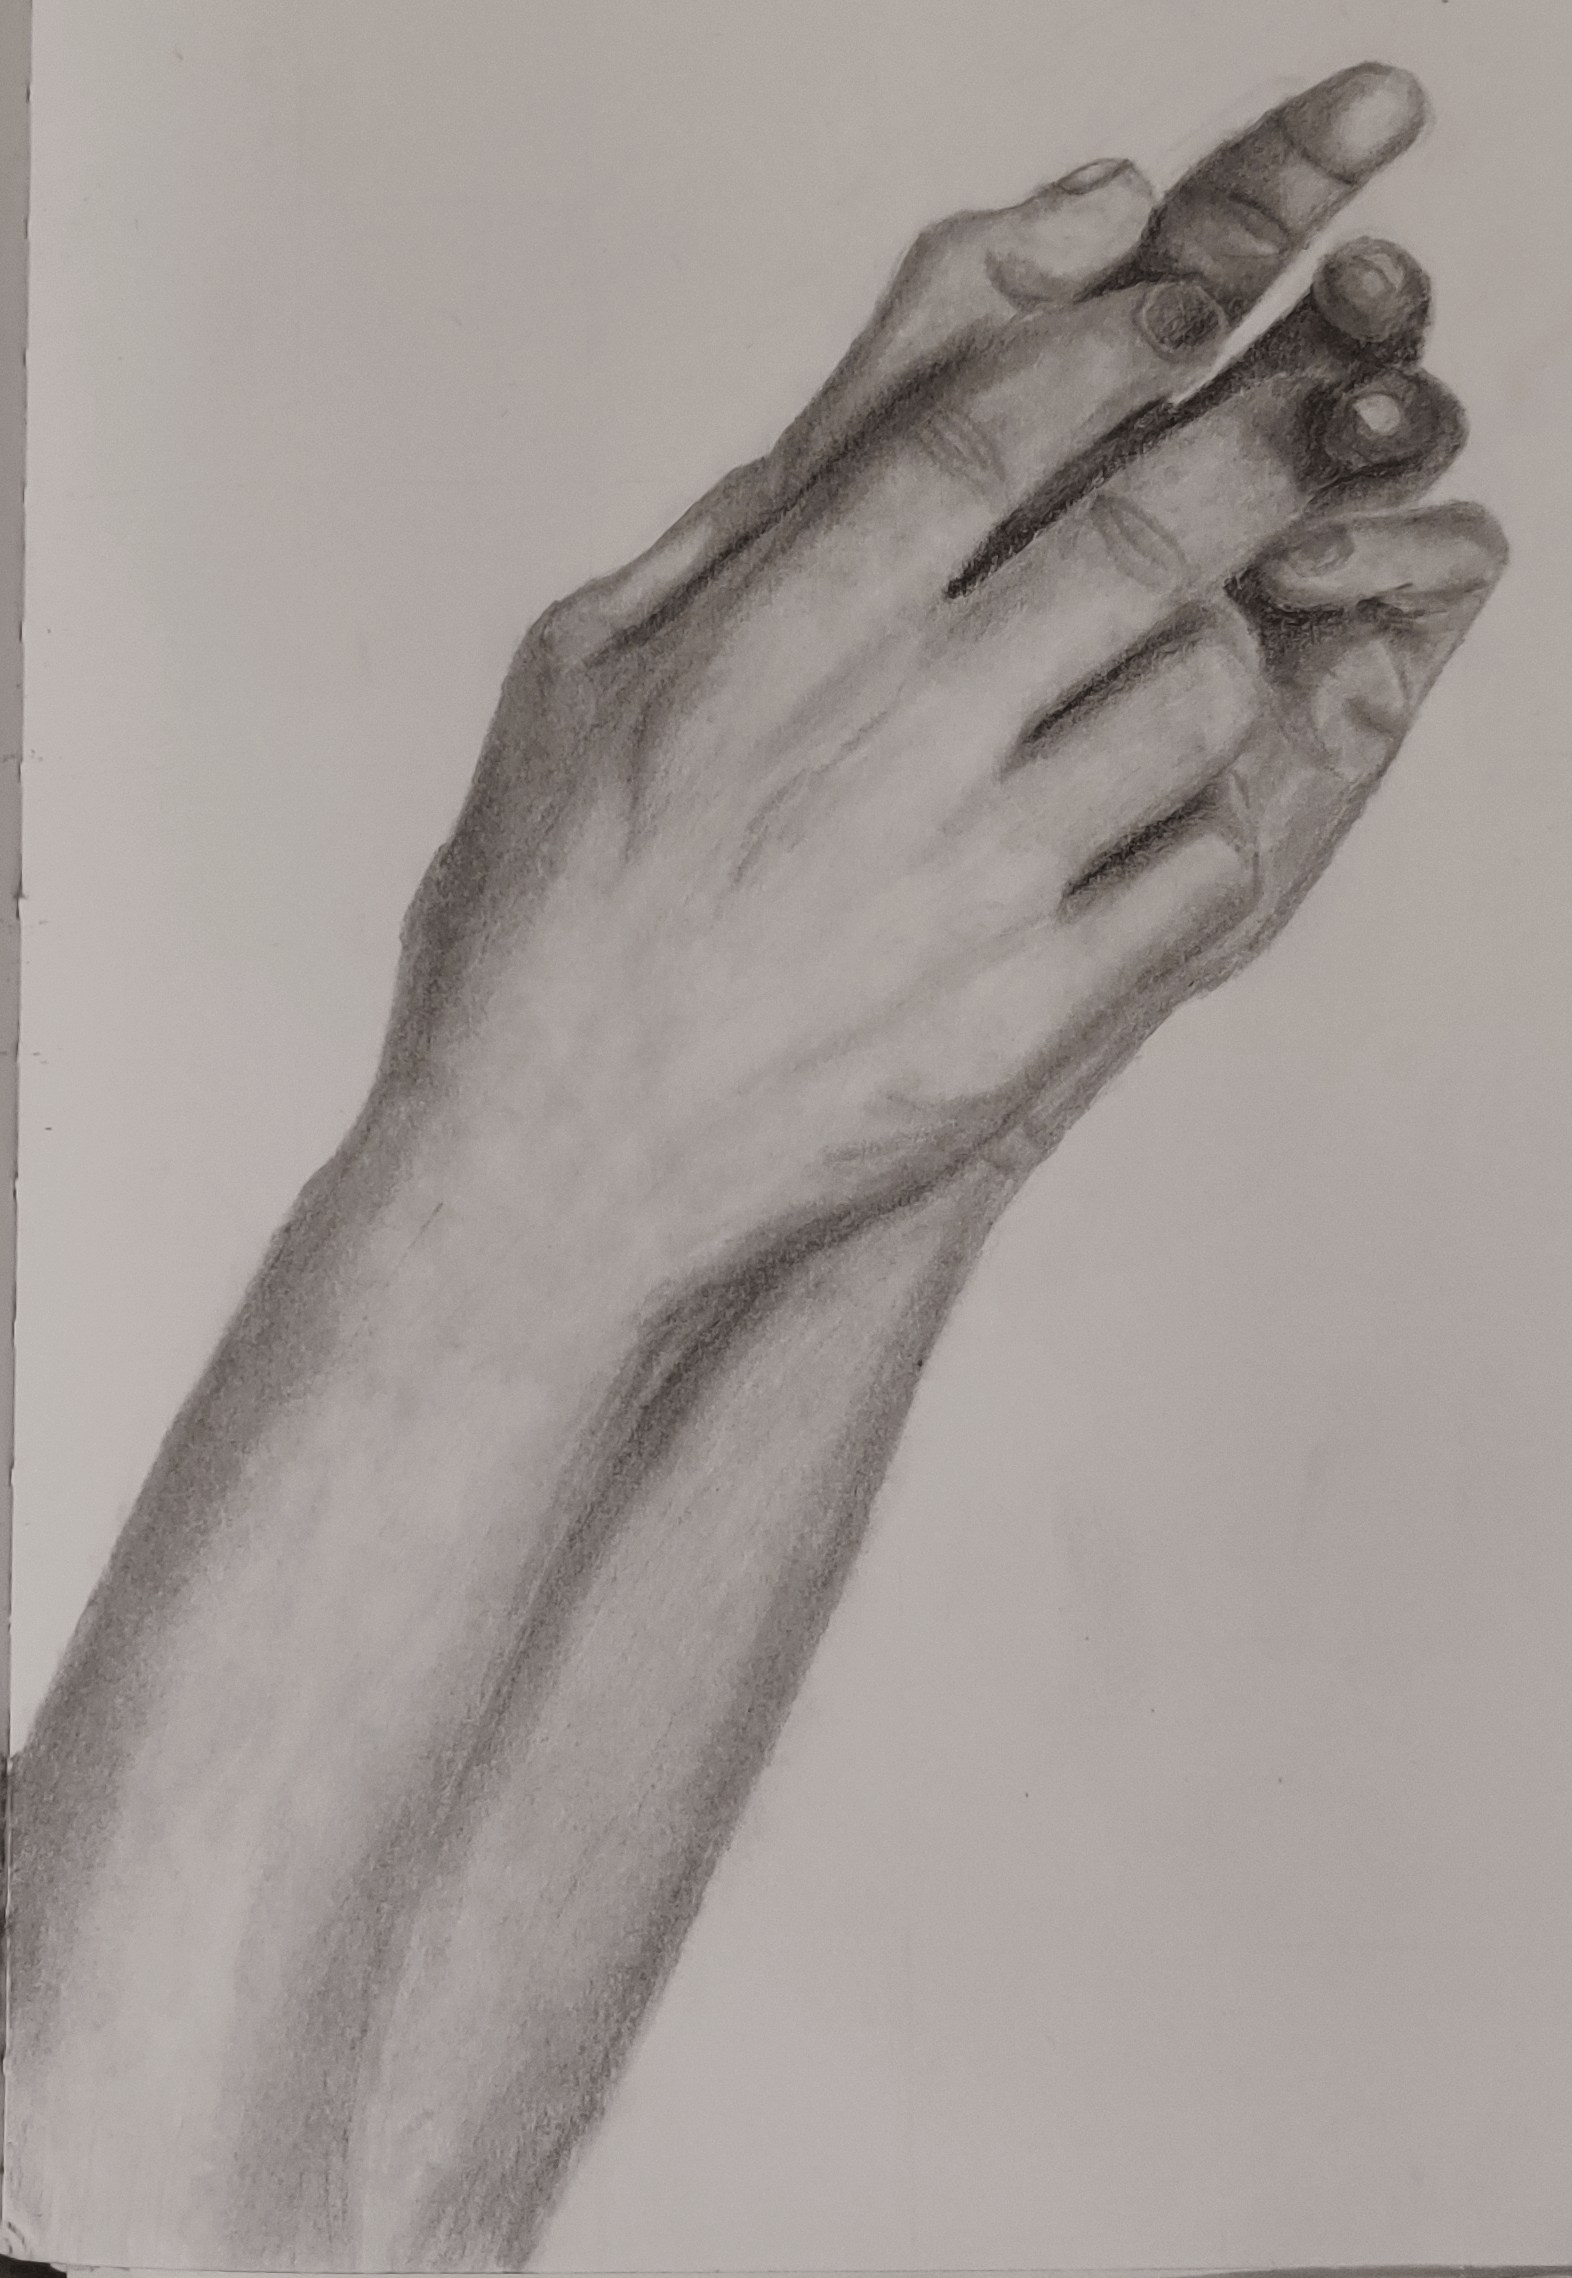 A value drawing of my hands together.